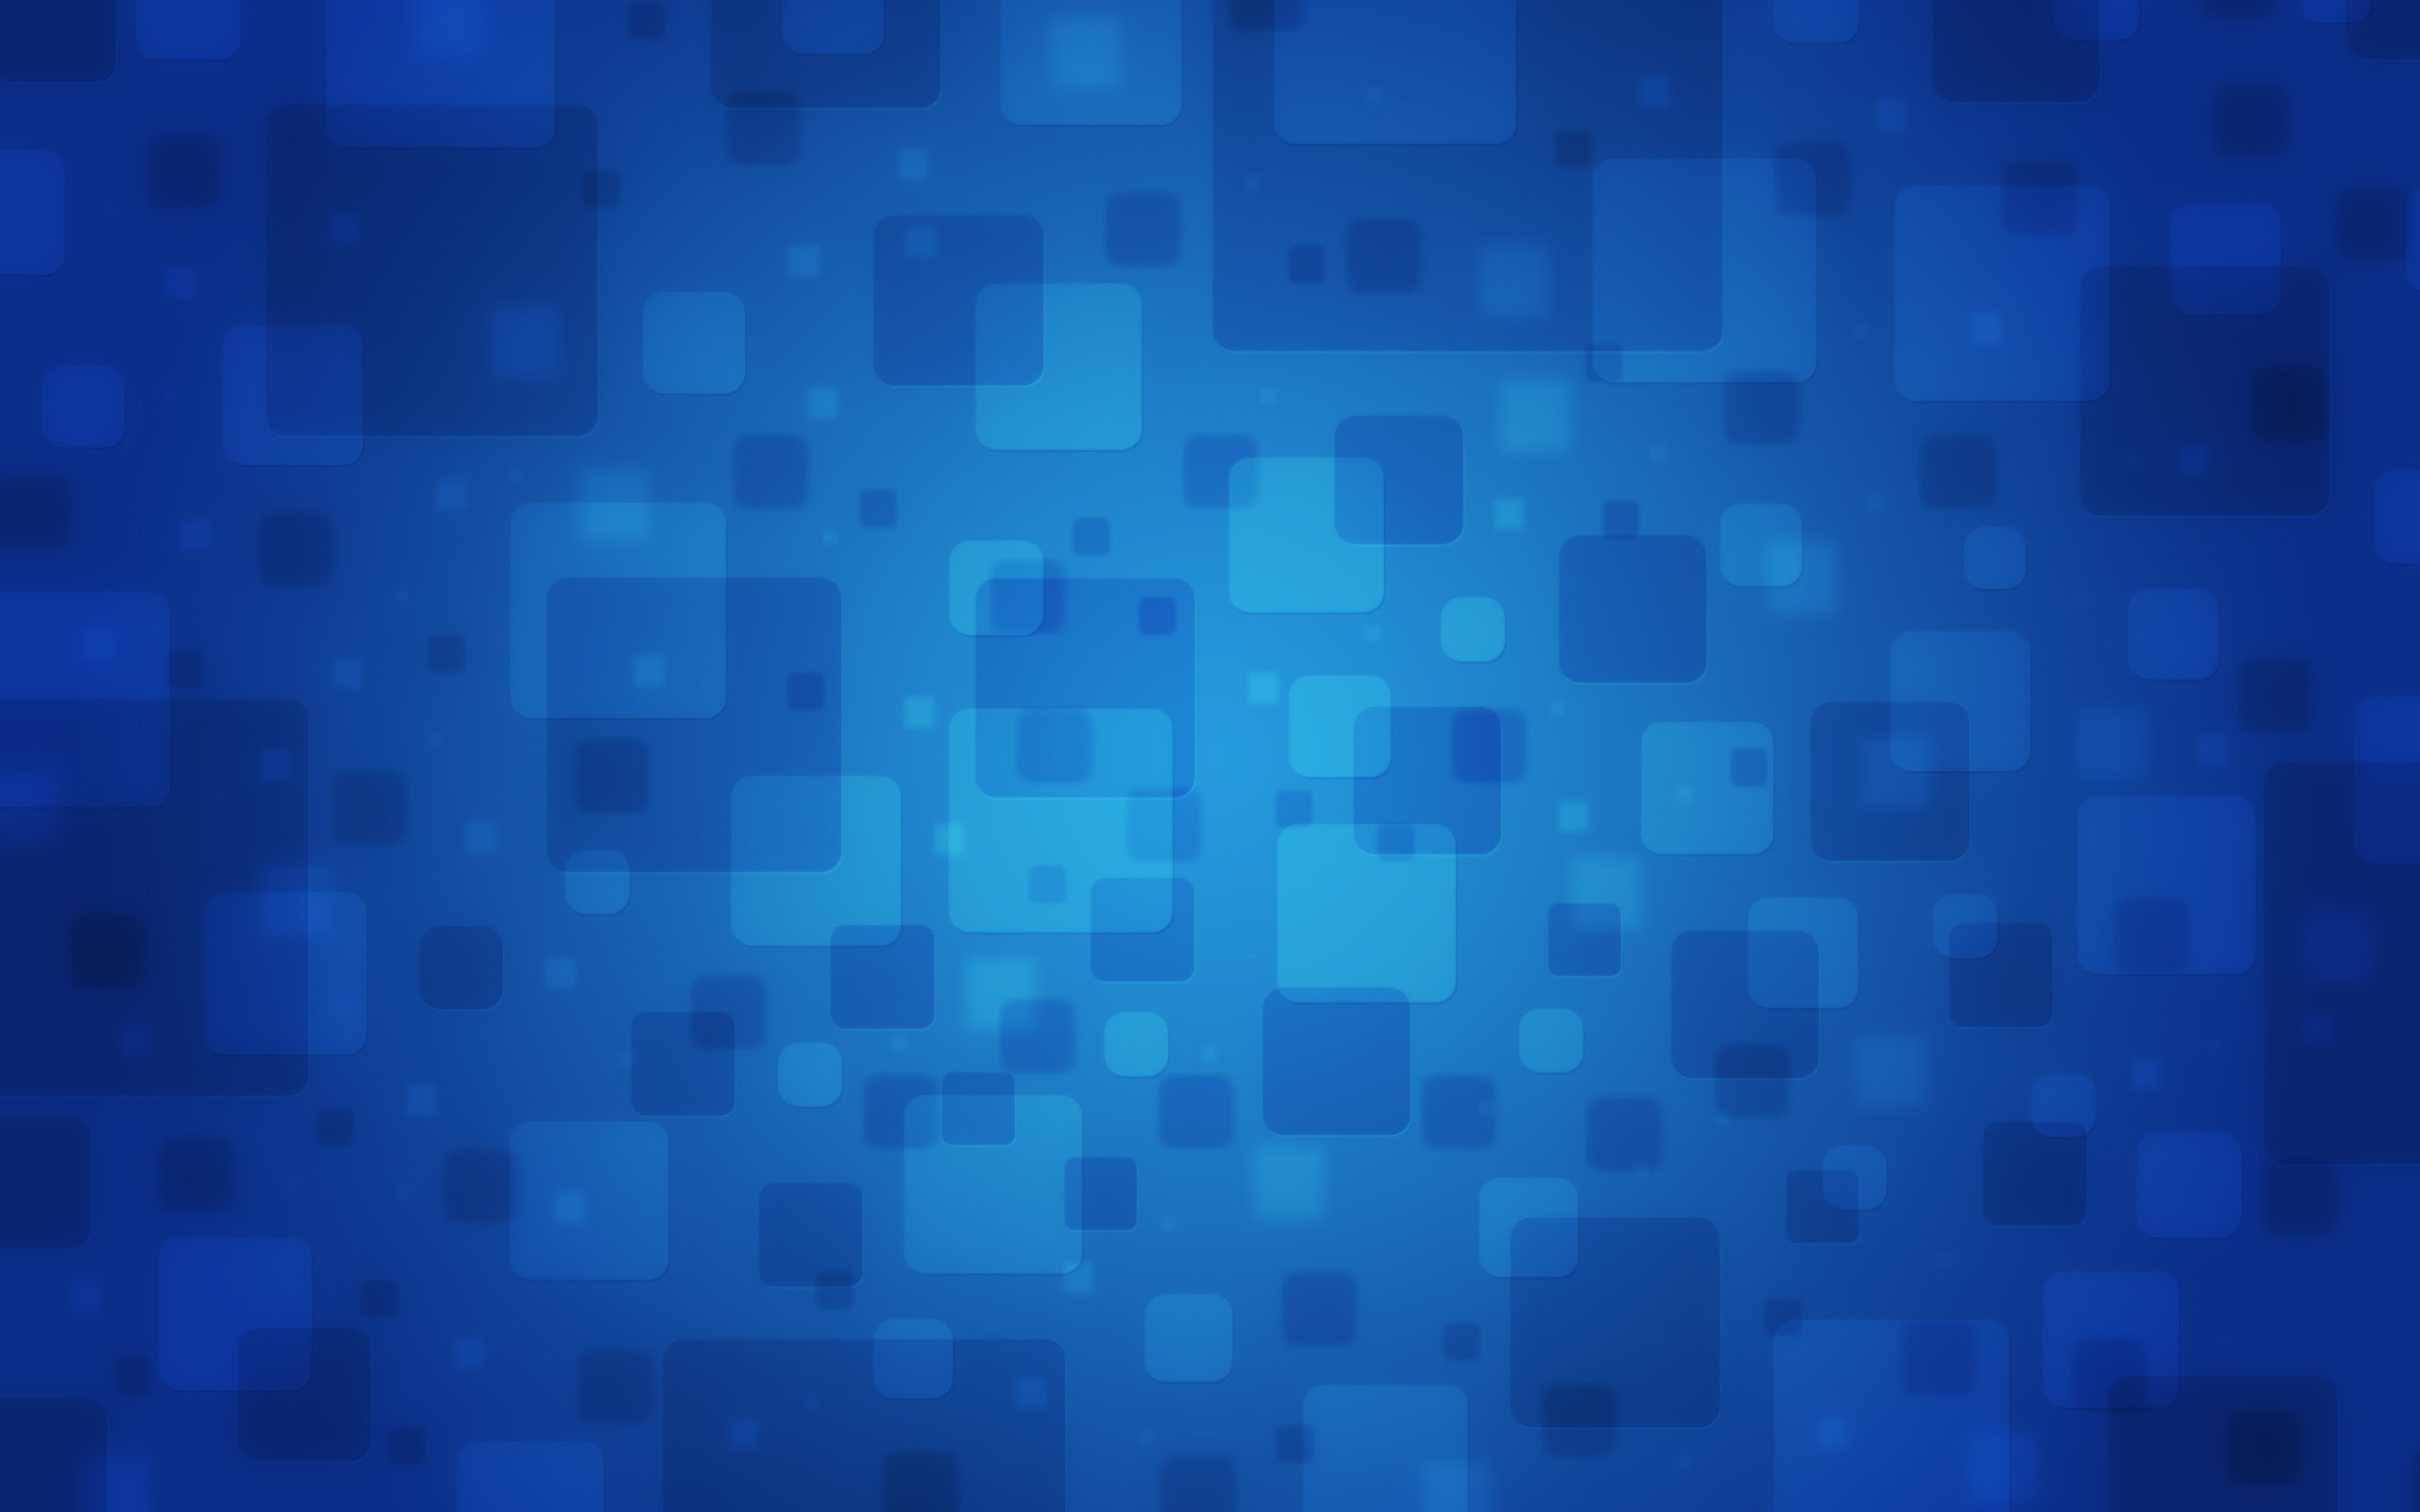 WALLPAPERS HD Blue Squares